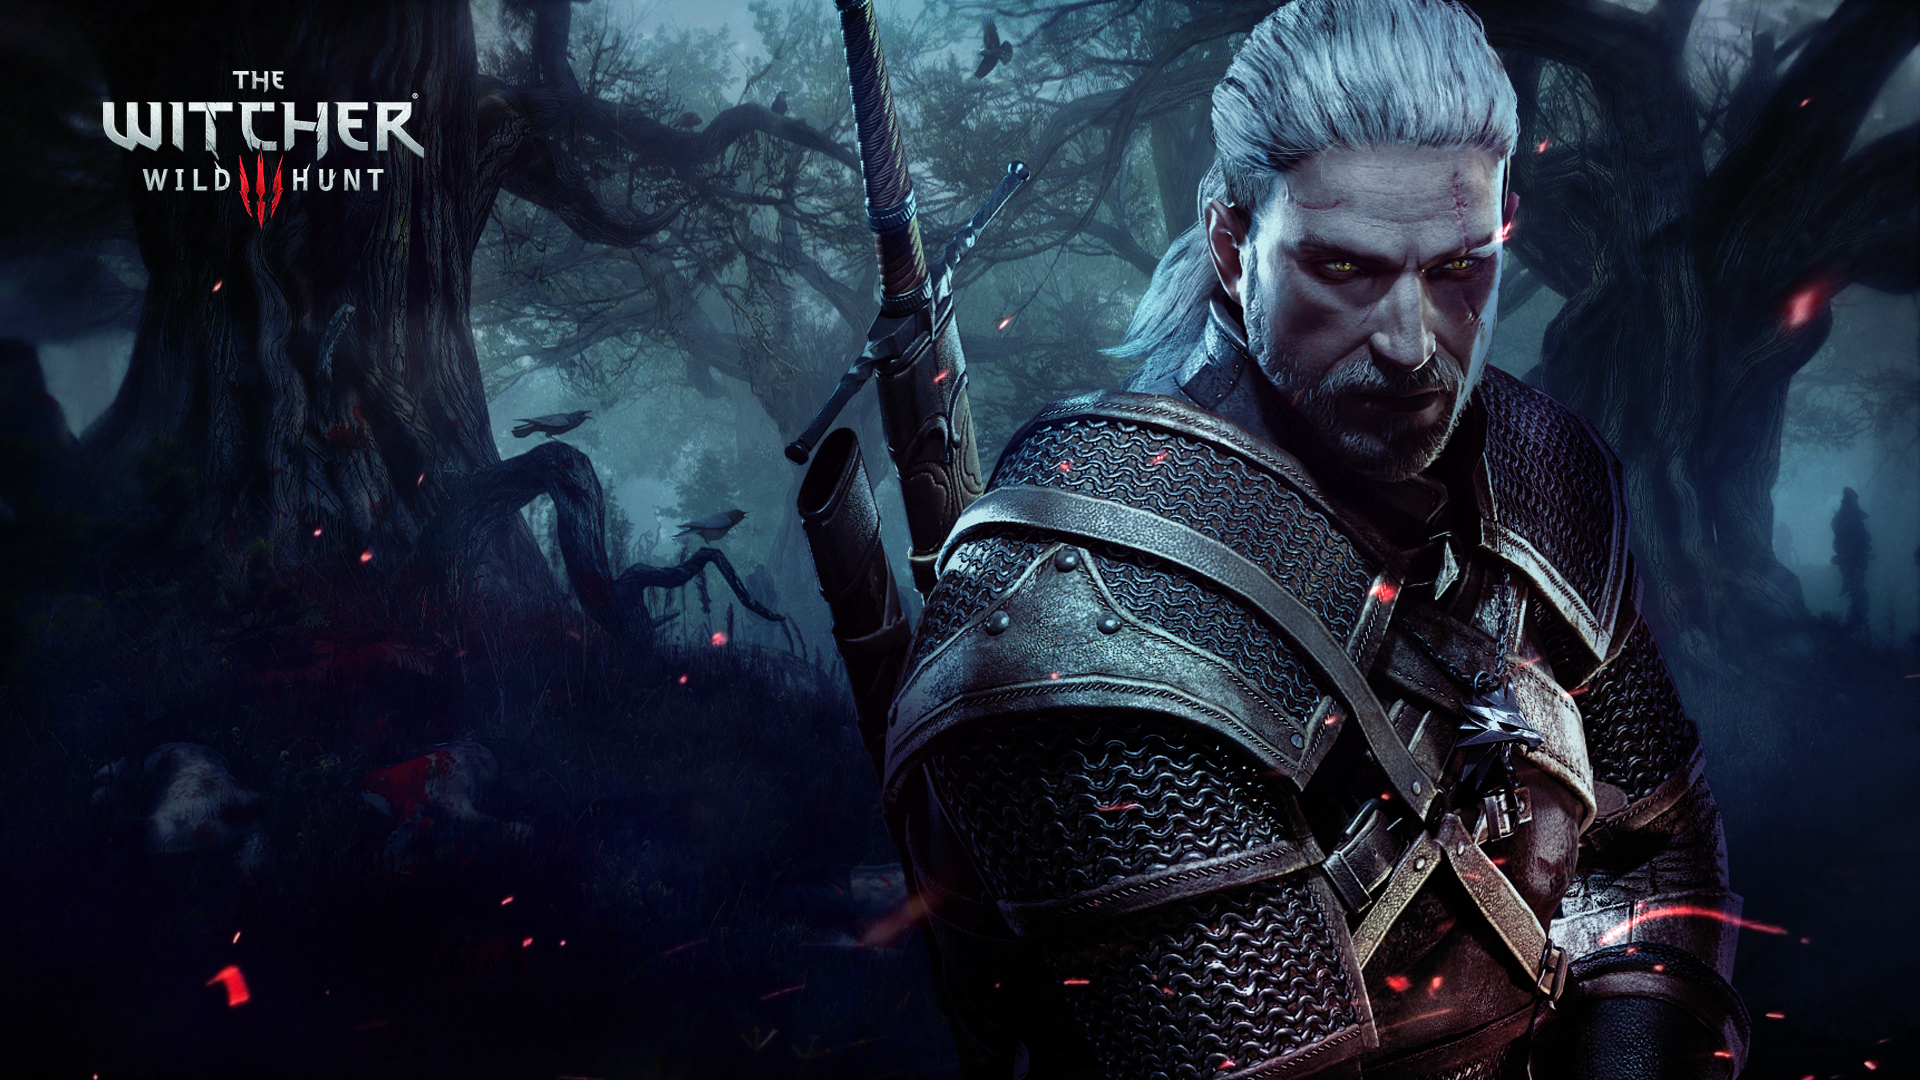 wallpapers witcher pictures wallpaper images sites 1920x1080